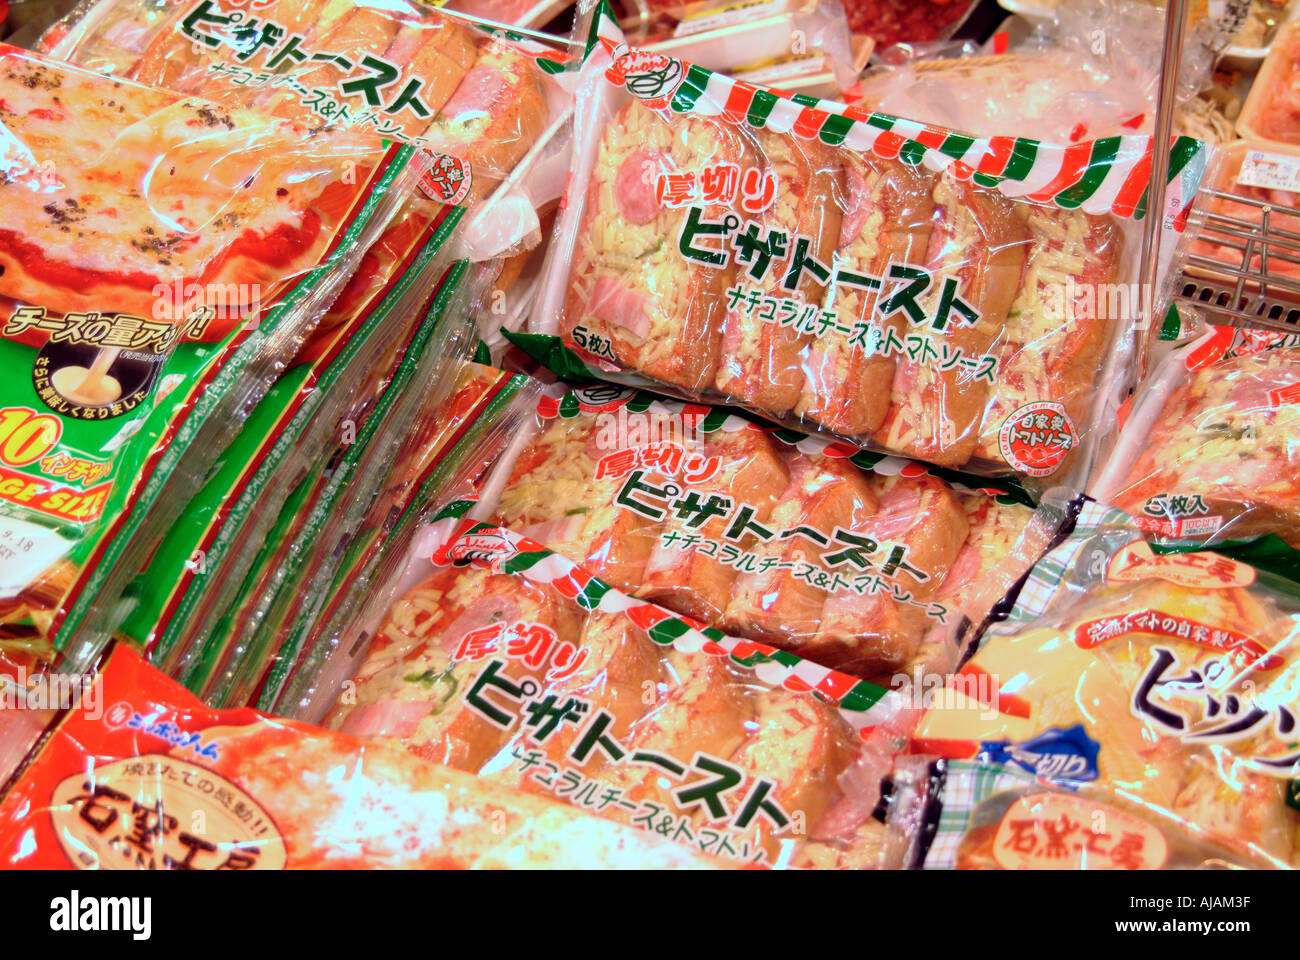 Pizza toast and pizzas in a supermarket Kyoto Japan - Stock Image